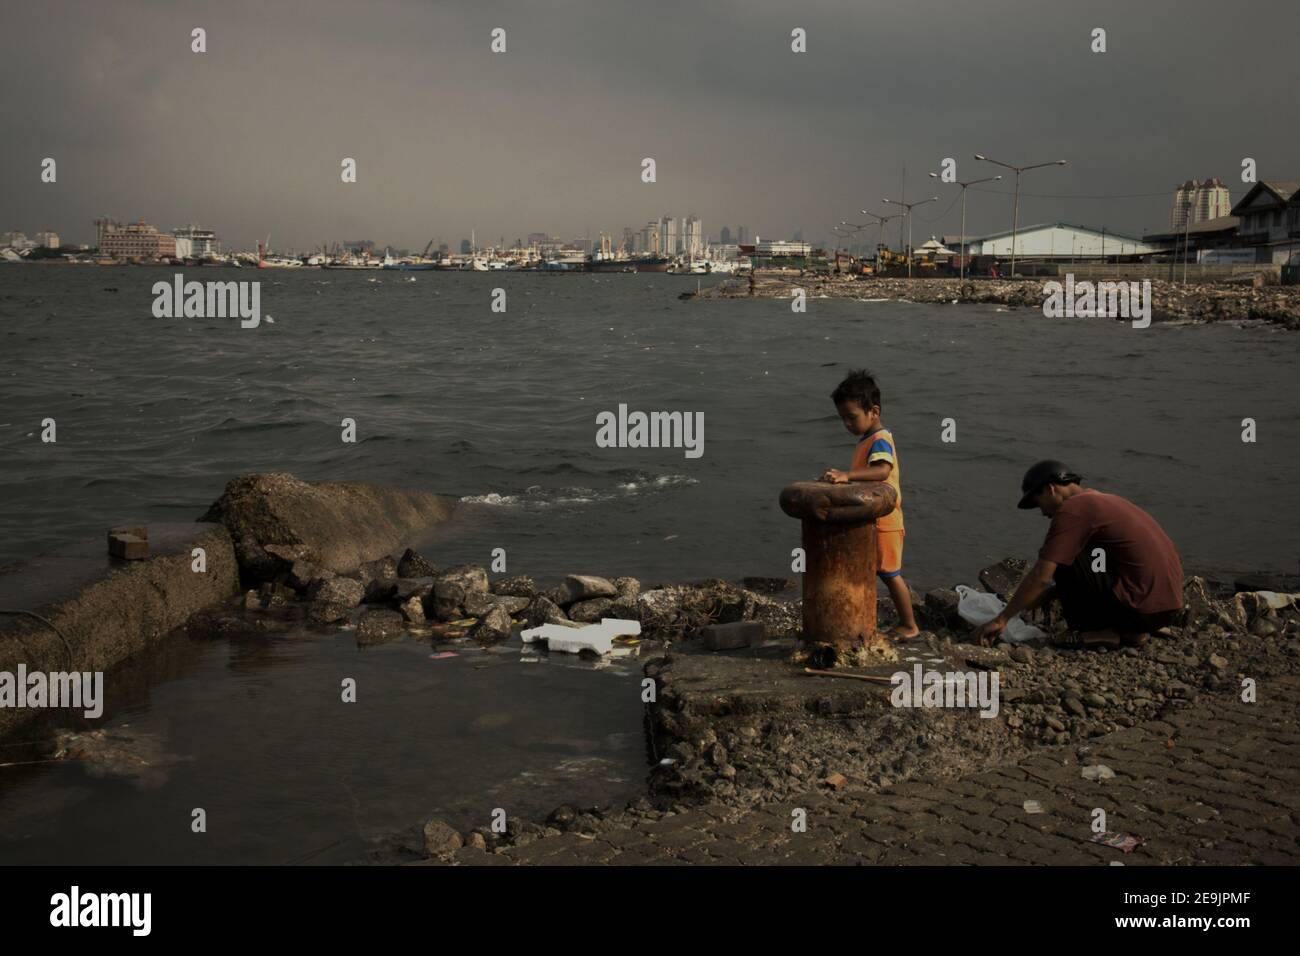 Weather and sea tides have left a harbour platform damage then abandoned, in the coastal area of Jakarta, where a man and child getting ready to have an outdoor recreation by fishing. Muara Baru area, Penjaringan, Jakarta, Indonesia. Stock Photo